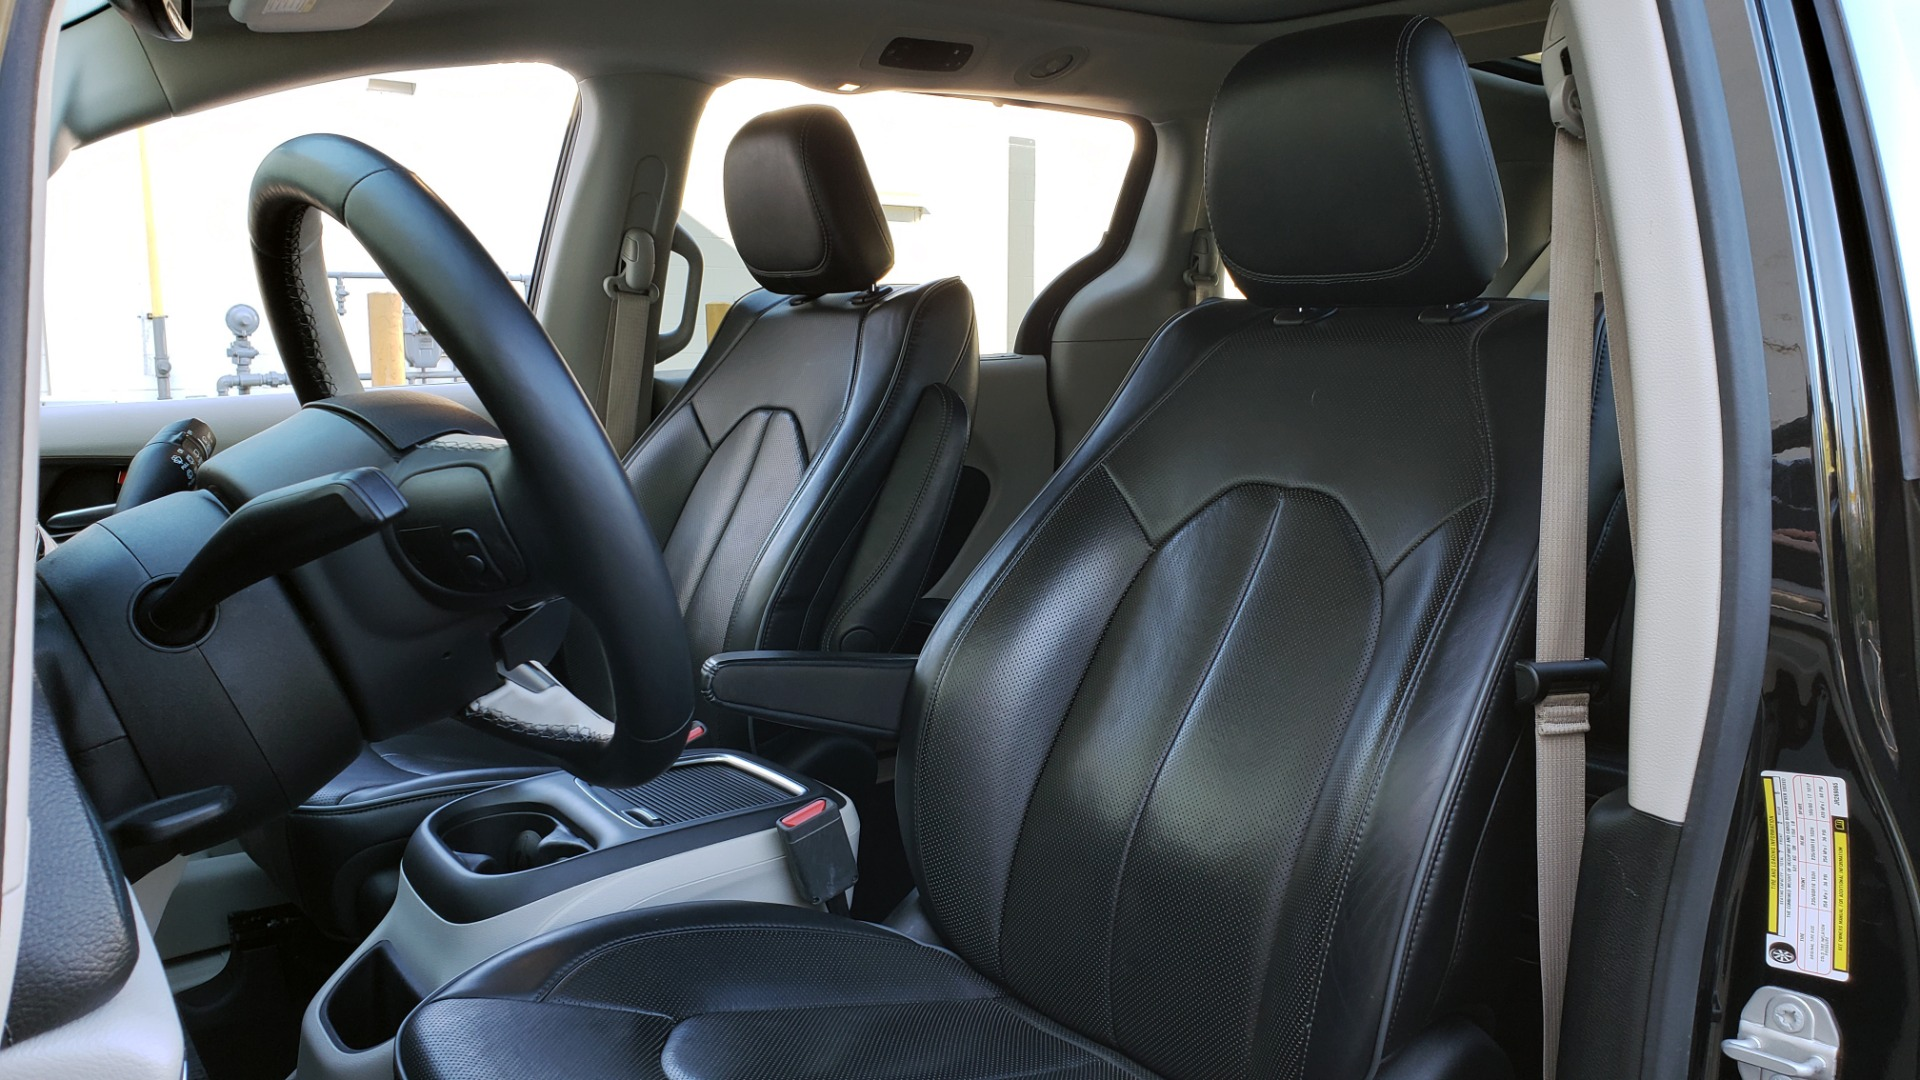 Used 2018 Chrysler PACIFICA LIMITED / 3.6L V6 / NAV / PANO-ROOF / 3-ROWS / REARVIEW for sale $25,995 at Formula Imports in Charlotte NC 28227 41